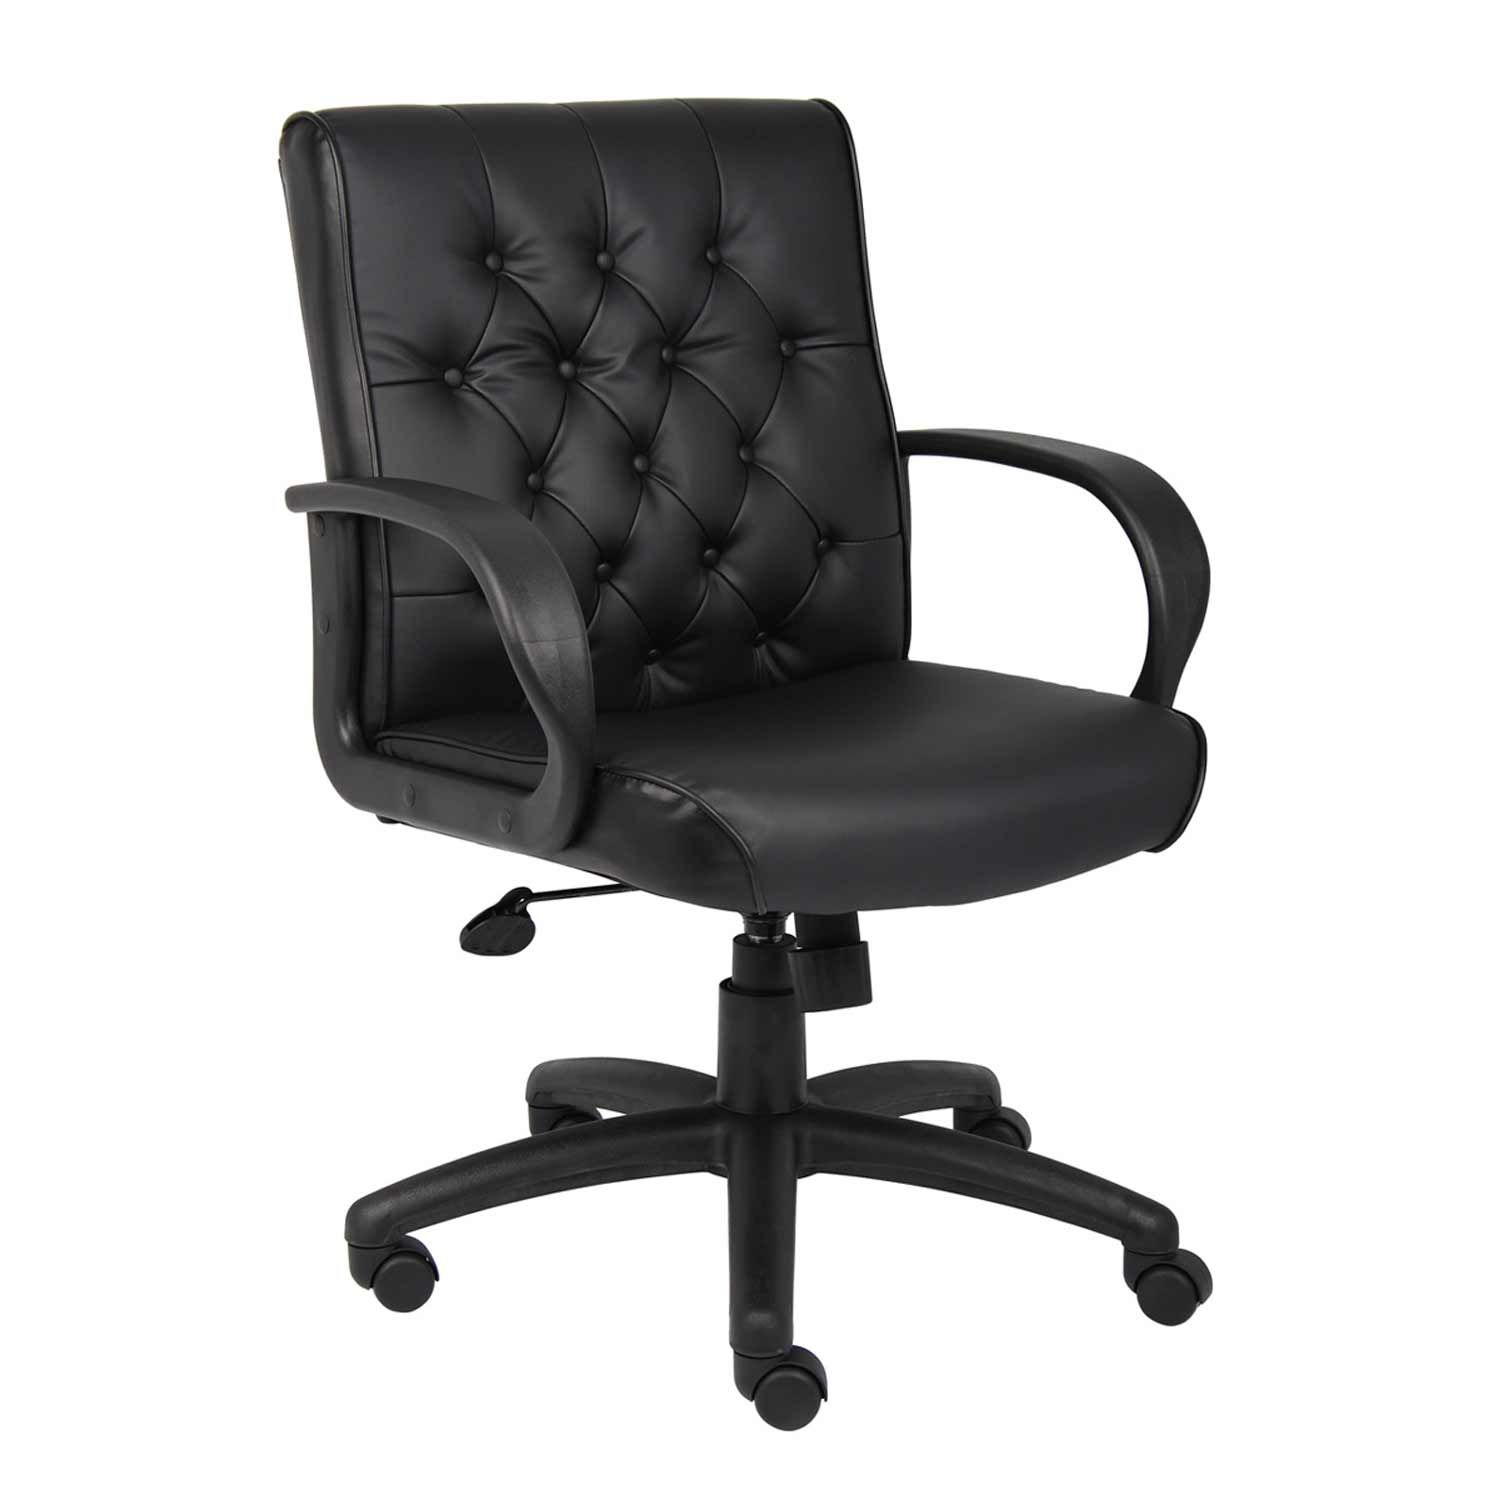 Boss Black Leather Large Office Chair Office Chair Best Office Chair Modern Home Office Furniture